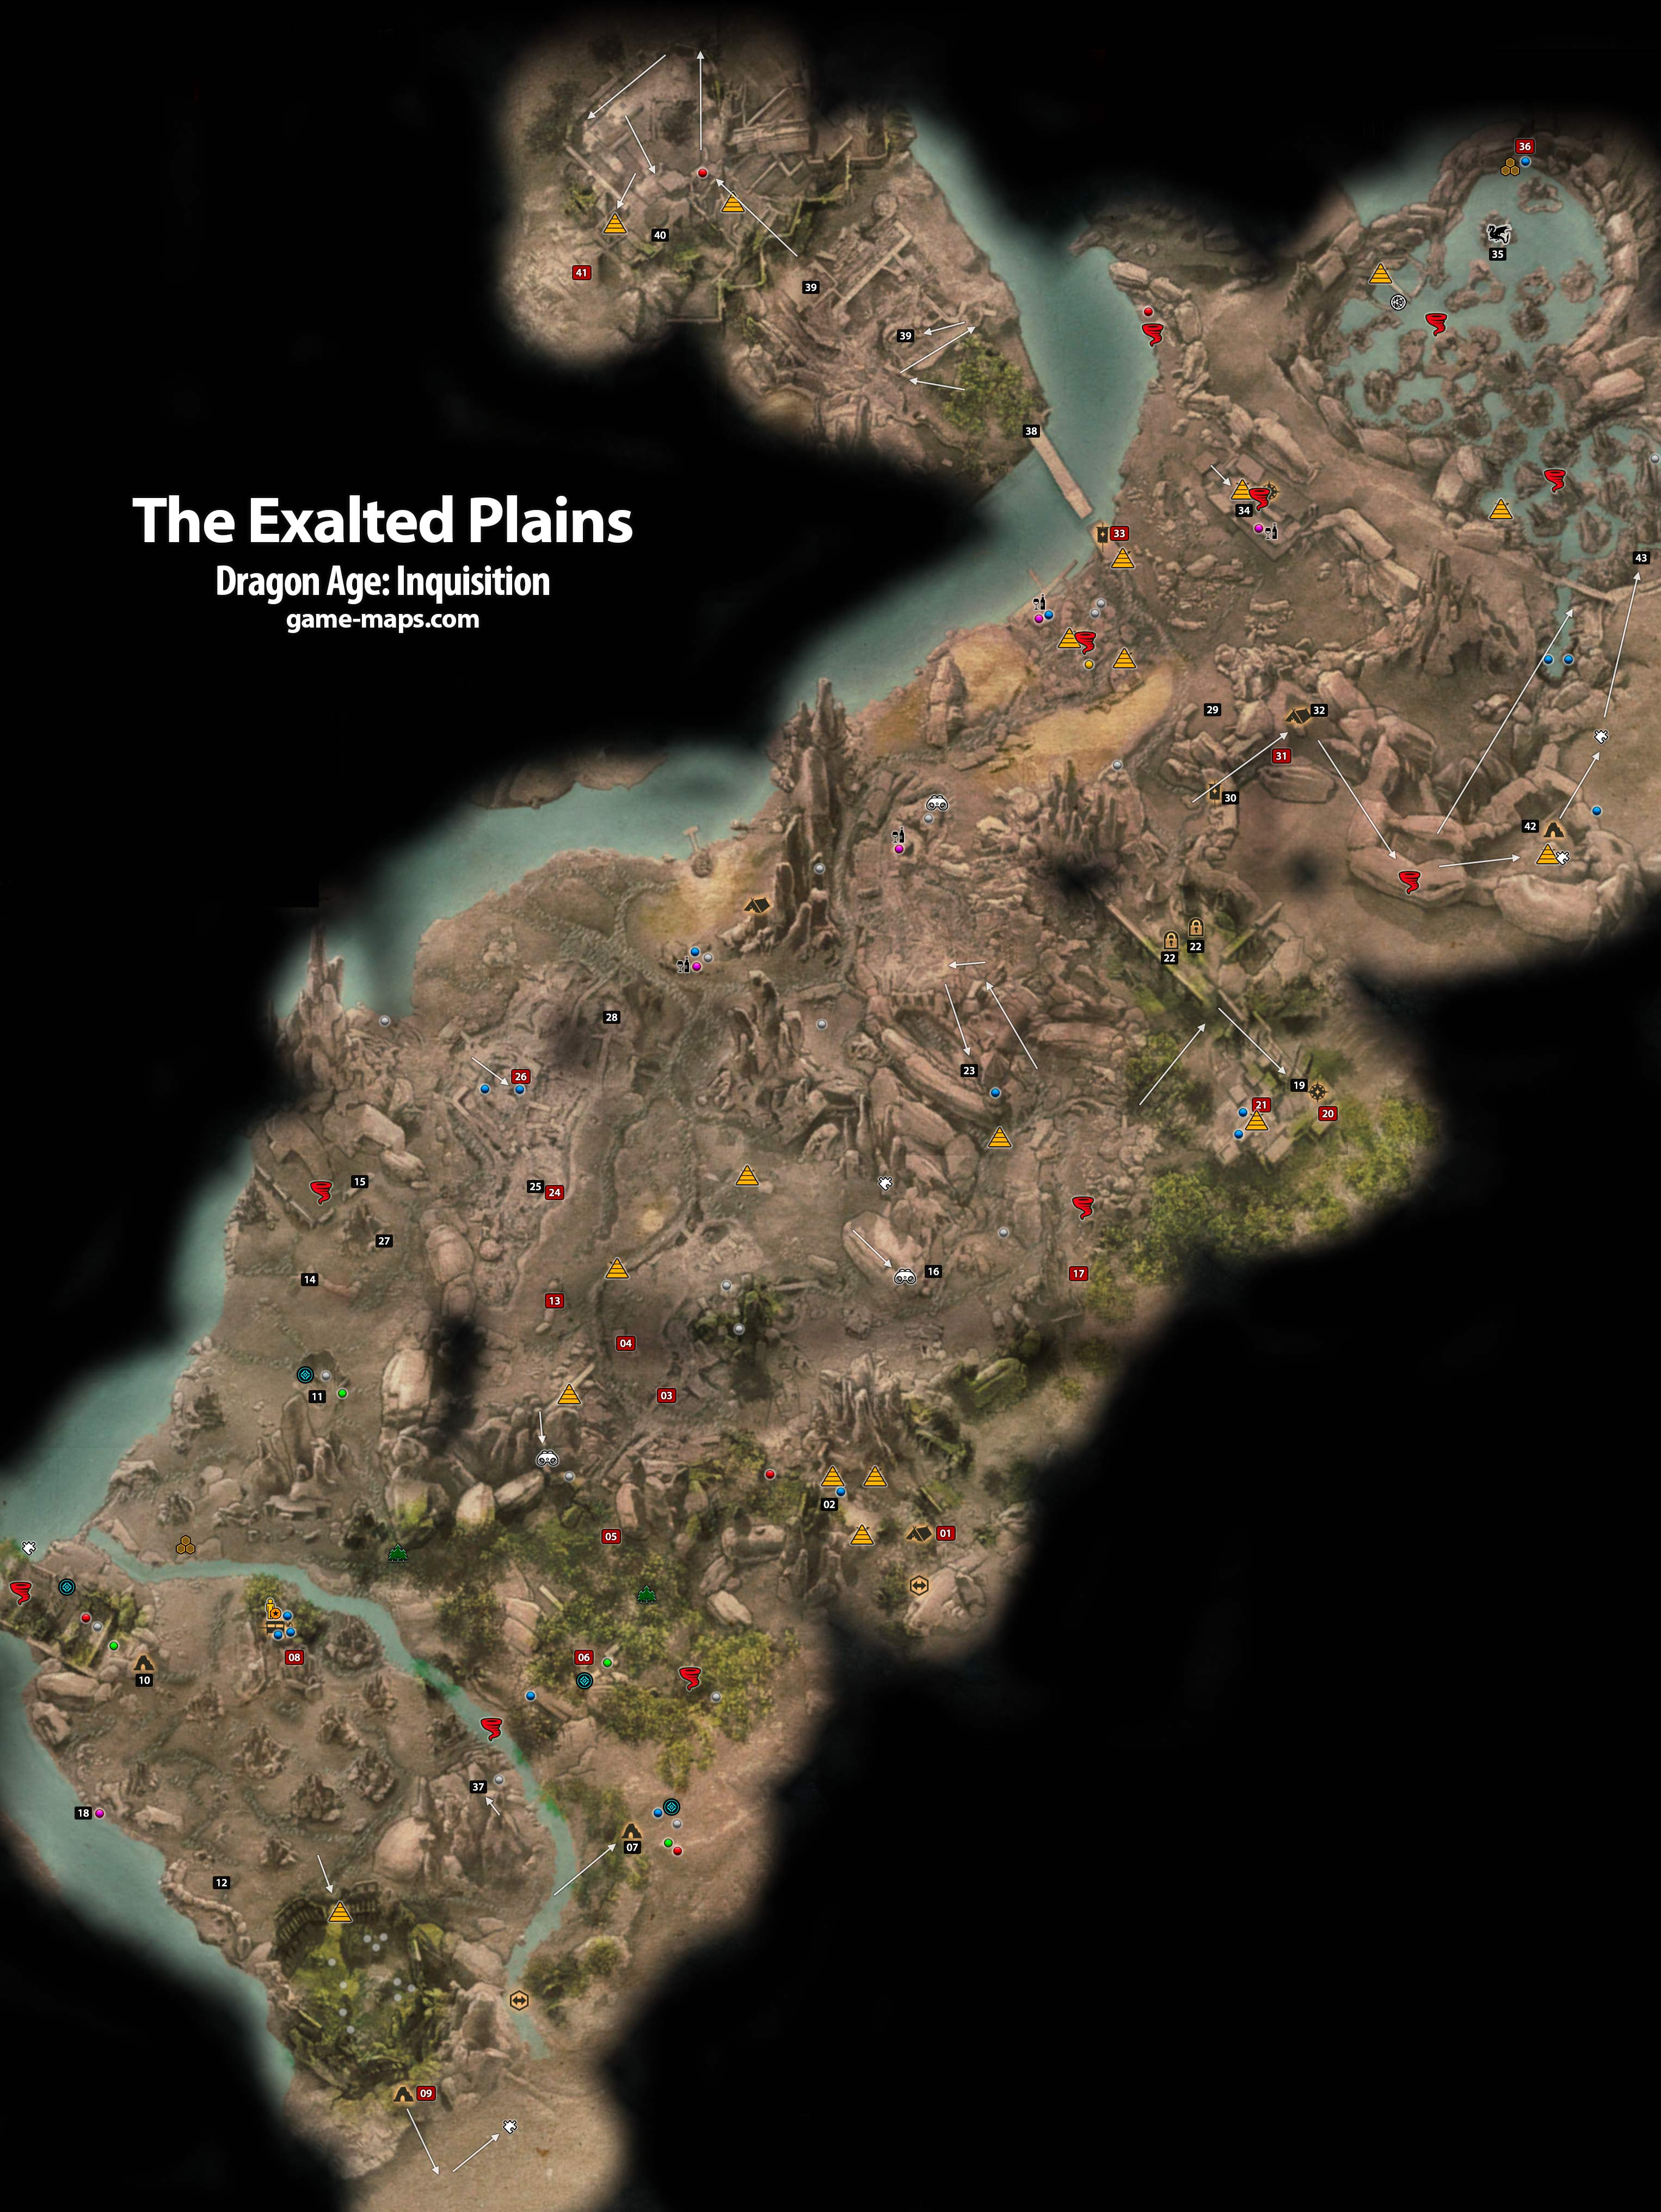 Map Of Emerald Graves : emerald, graves, Exalted, Plains, Dragon, Inquisition, Game-maps.com